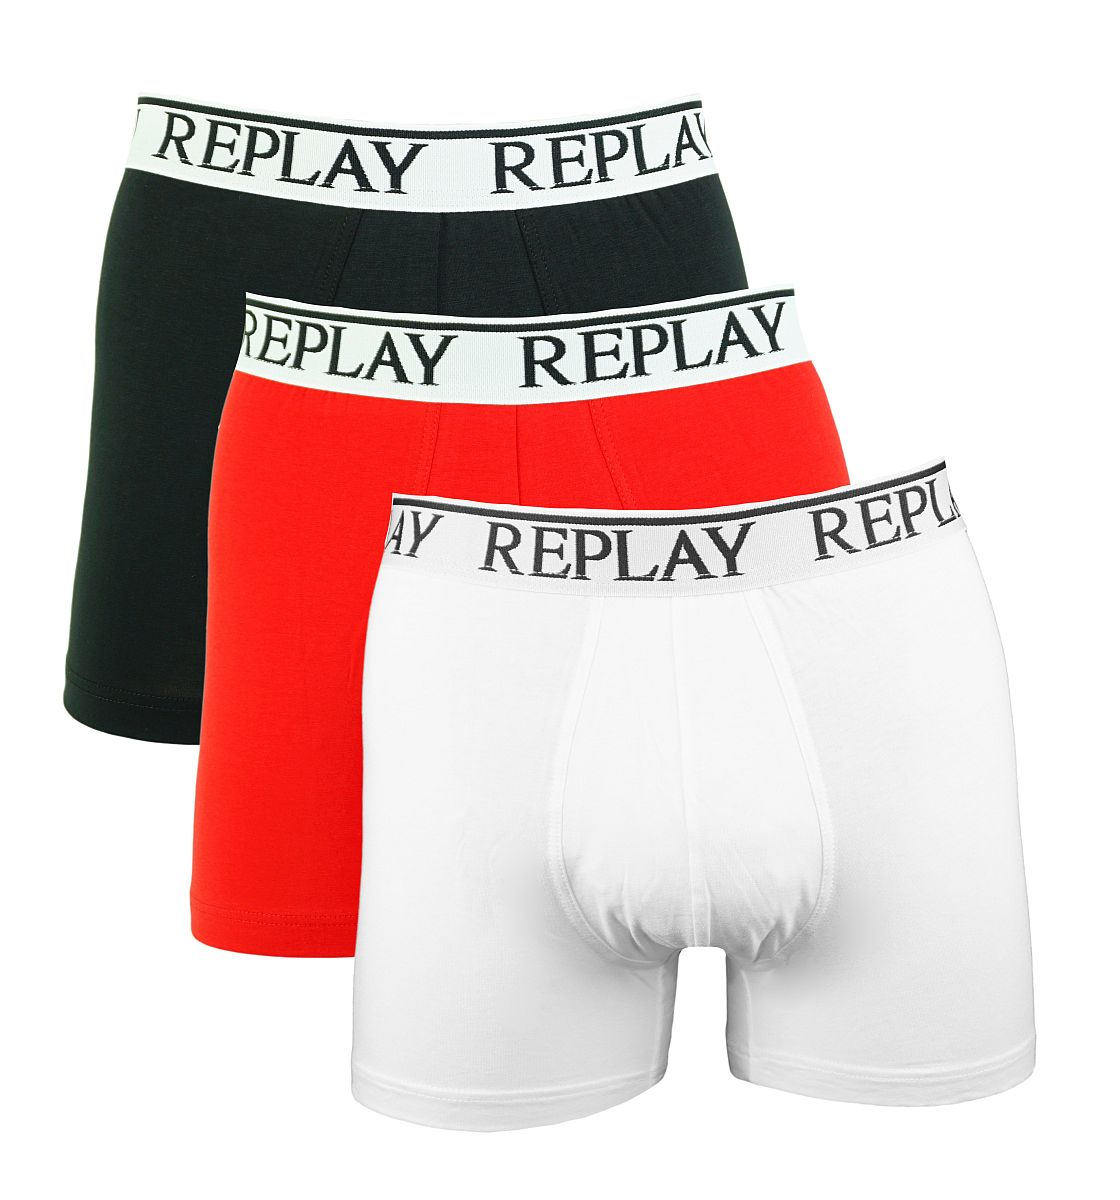 Replay 3er Pack Shorts Boxershorts M605001 E57 schwarz, rot, weiss W18-RY1